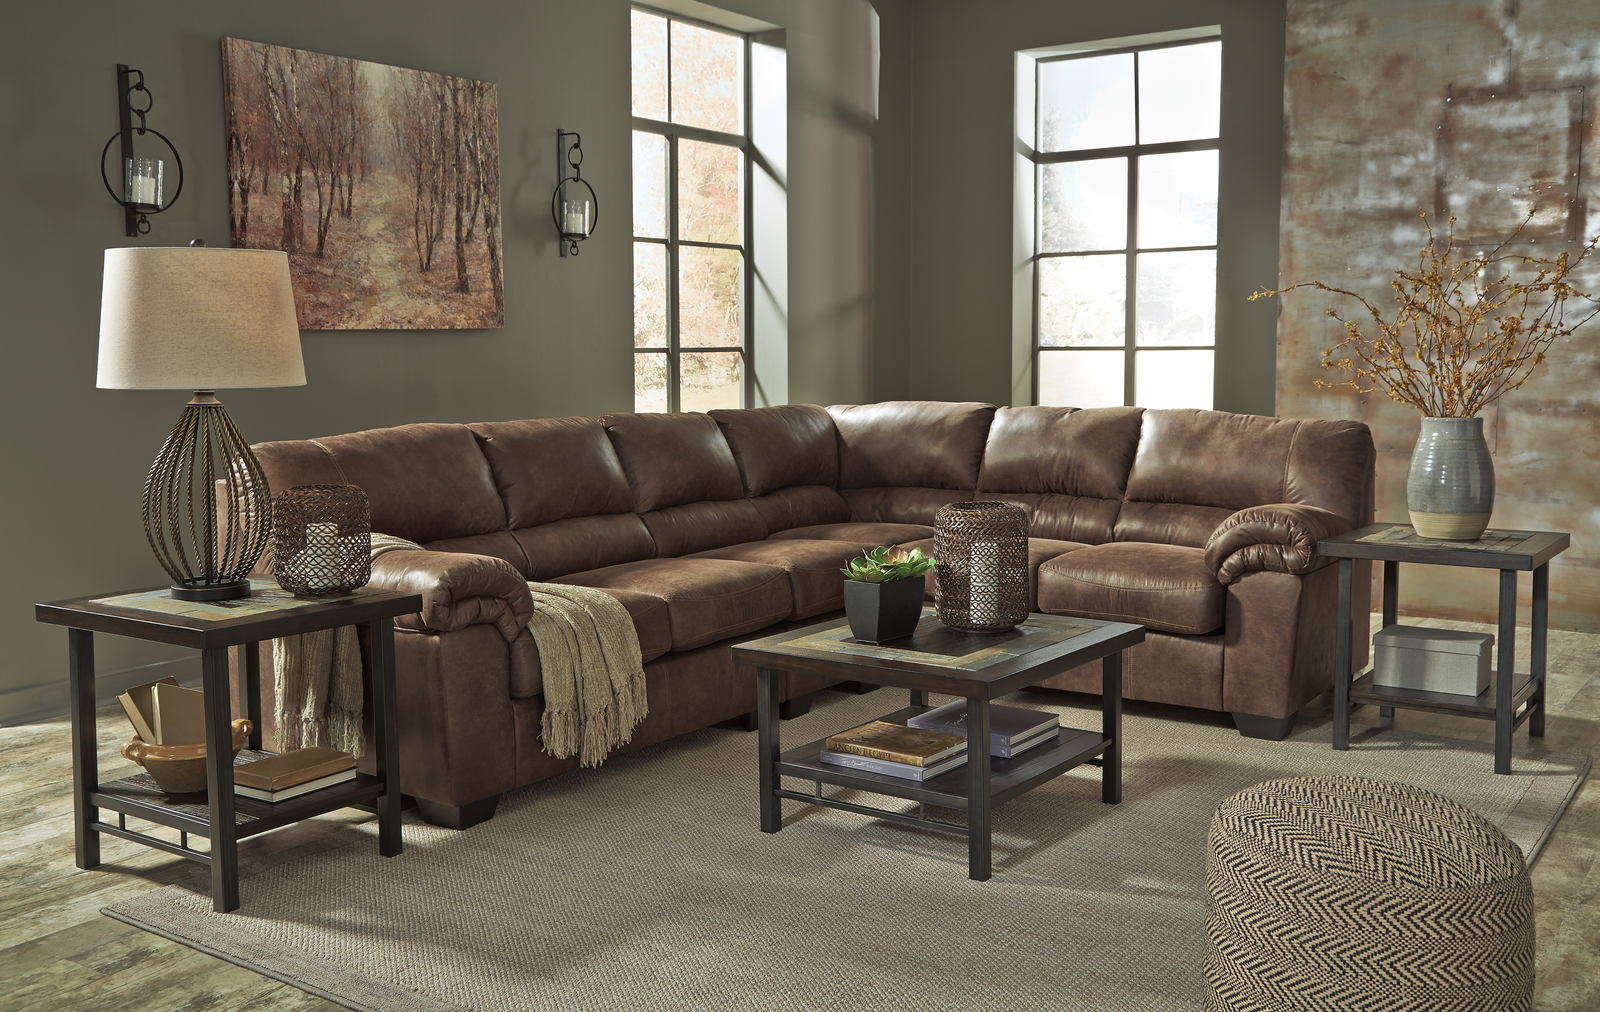 Bladen 3 piece sectional living room set in coffee for 3 piece living room set cheap